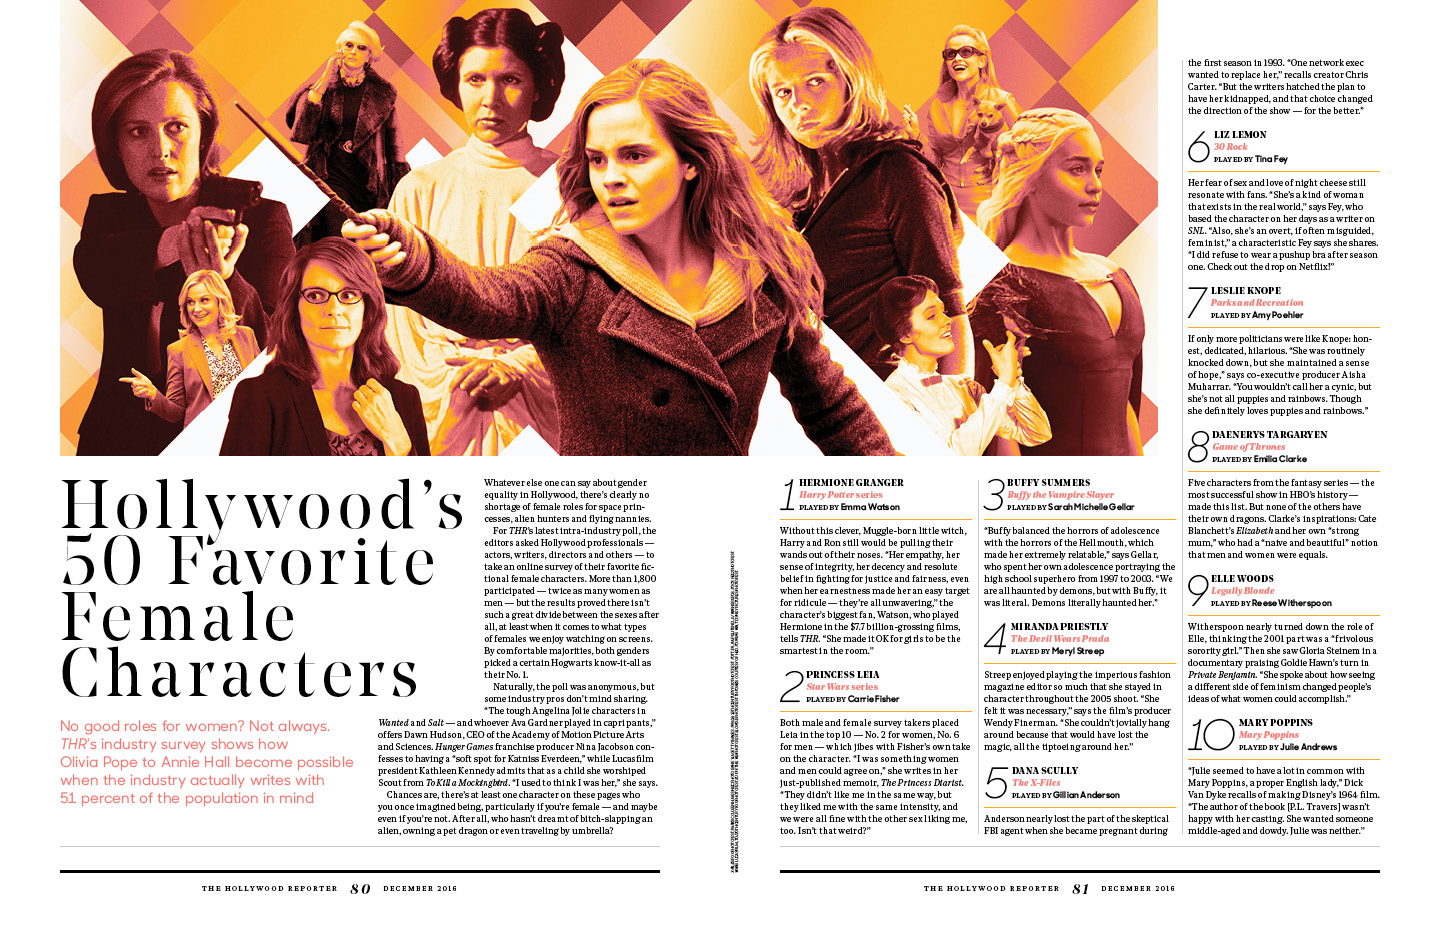 Hollywood's 50 Favorite Female Characters / The Hollywood Reporter / WIE 2016 / kelsey stefanson / art direction + graphic design / yeskelsey.com